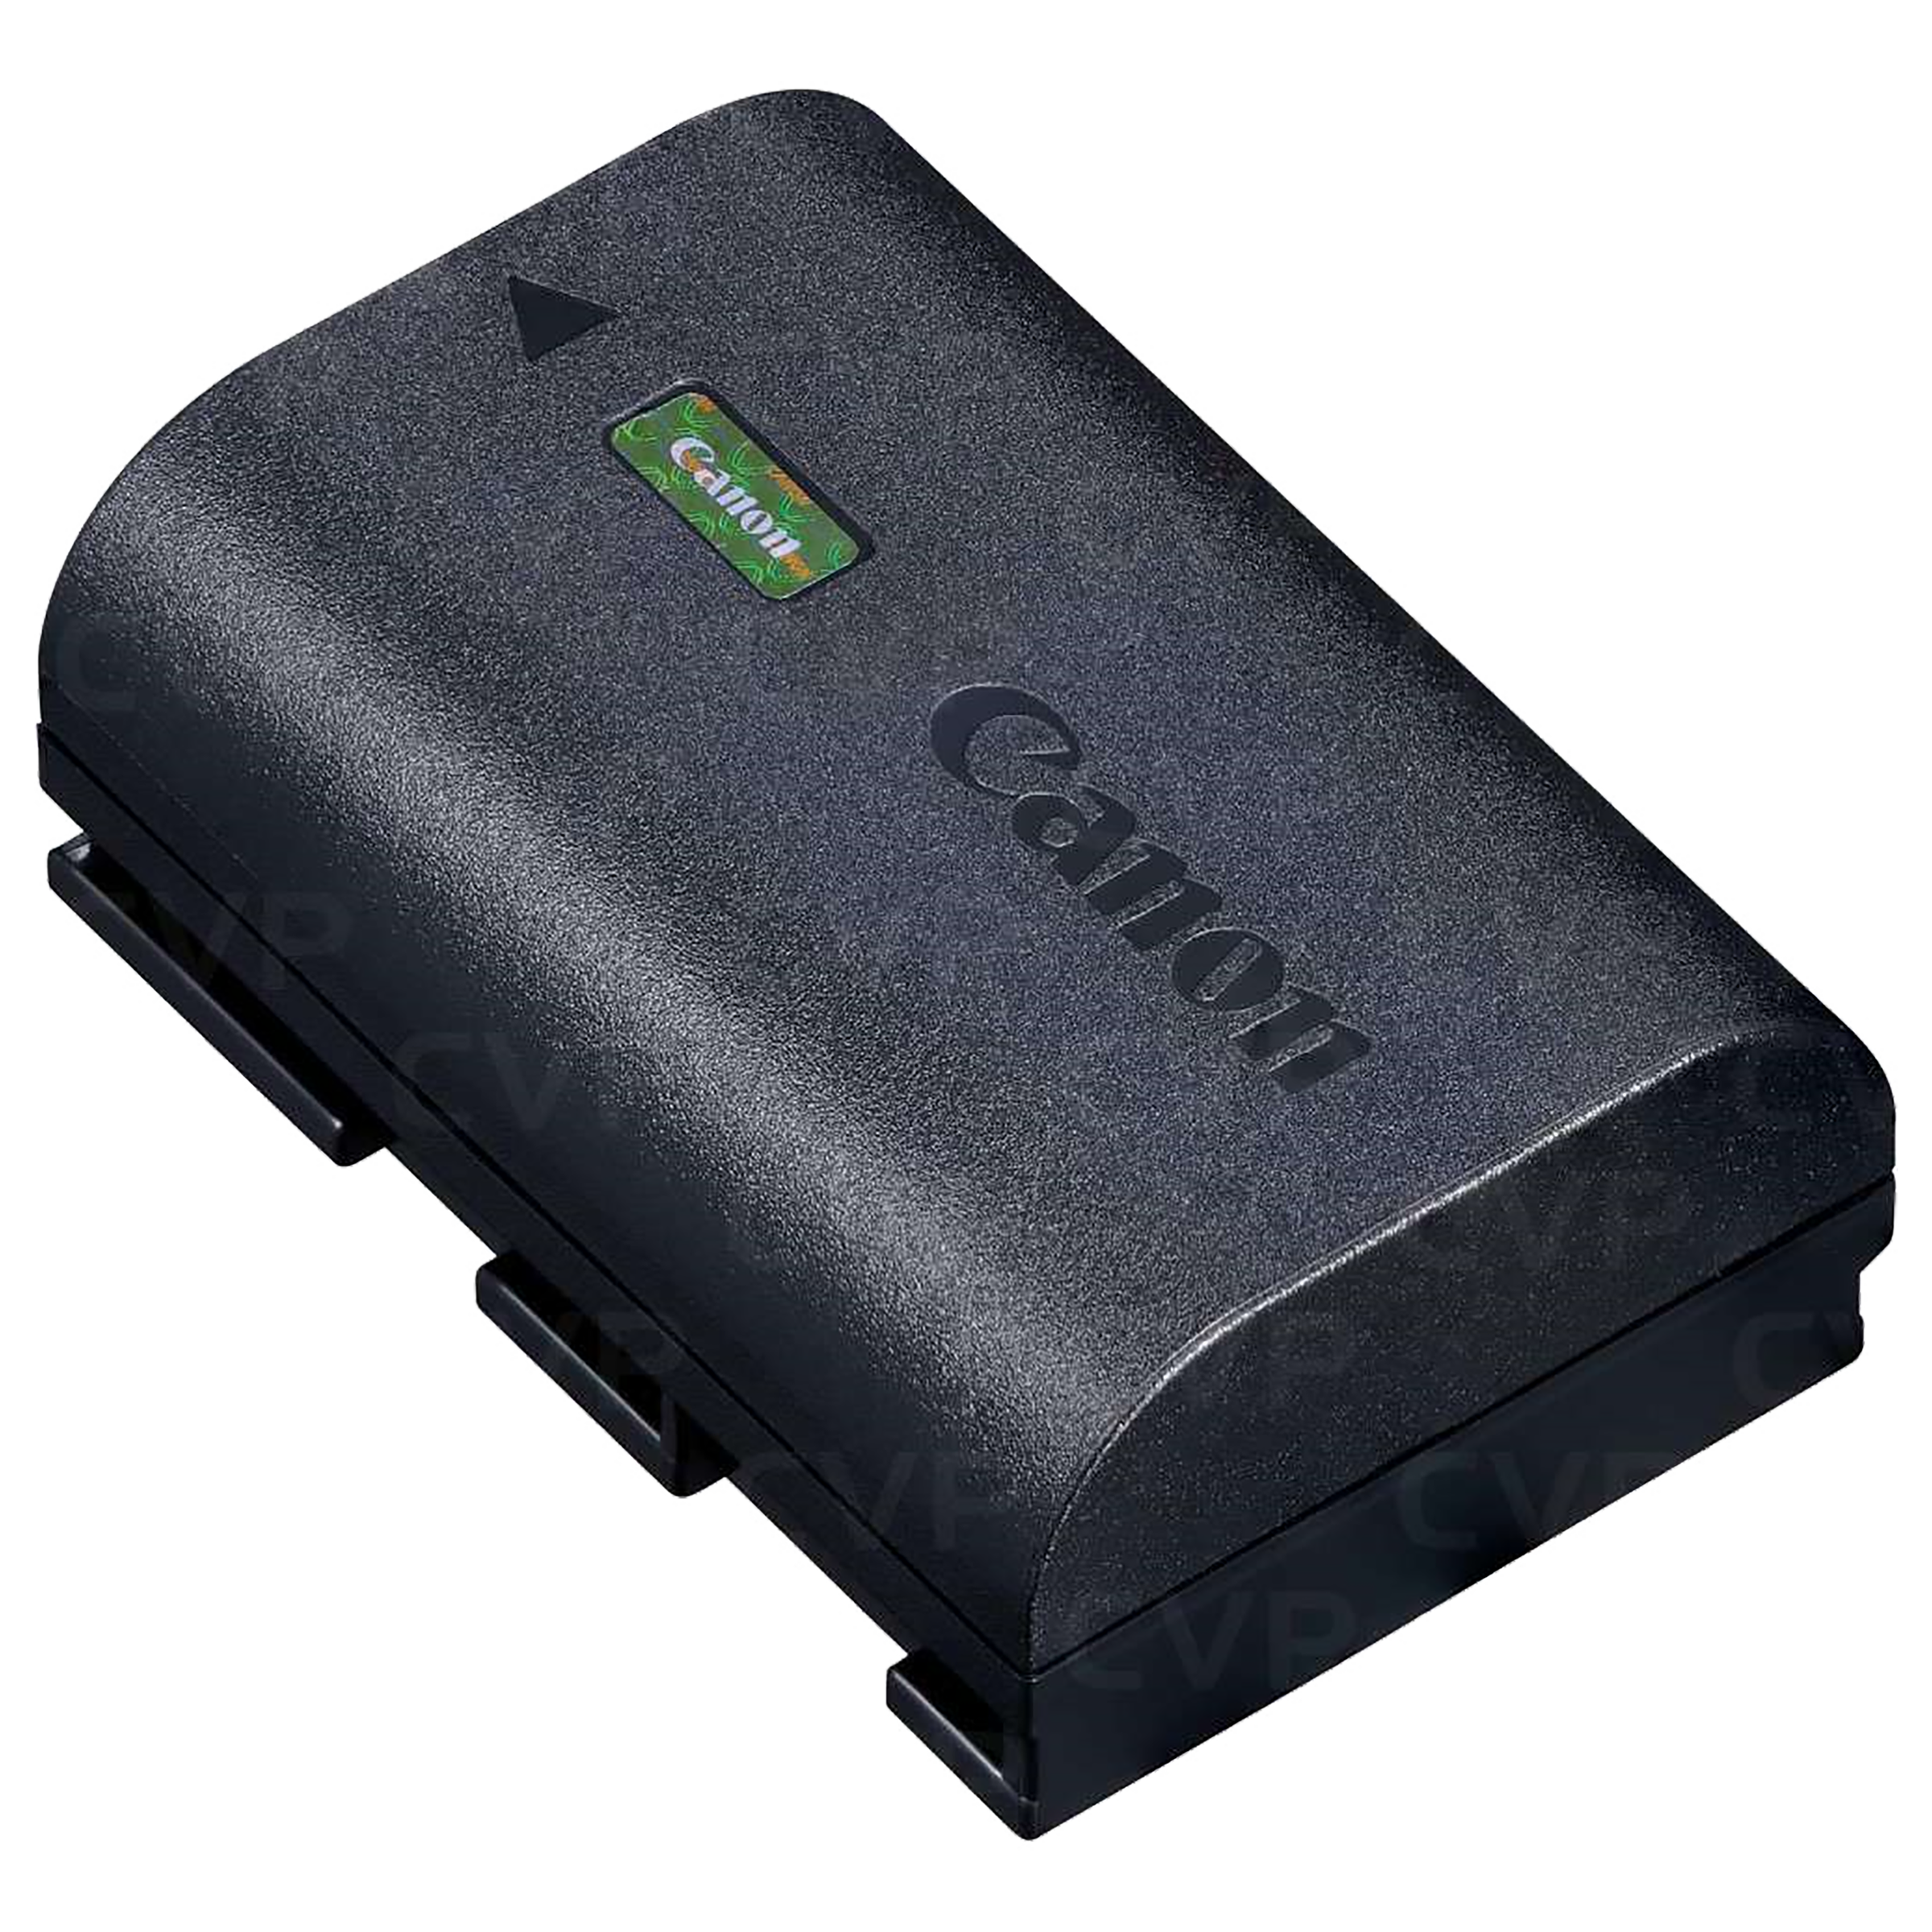 Canon LP-E6NH 2130 mAh Lithium-Ion Rechargeable Battery For EOS 90D/80D/R/RP/R5/R6 (Compact and Lightweight, 4132C002AA, Black)_1